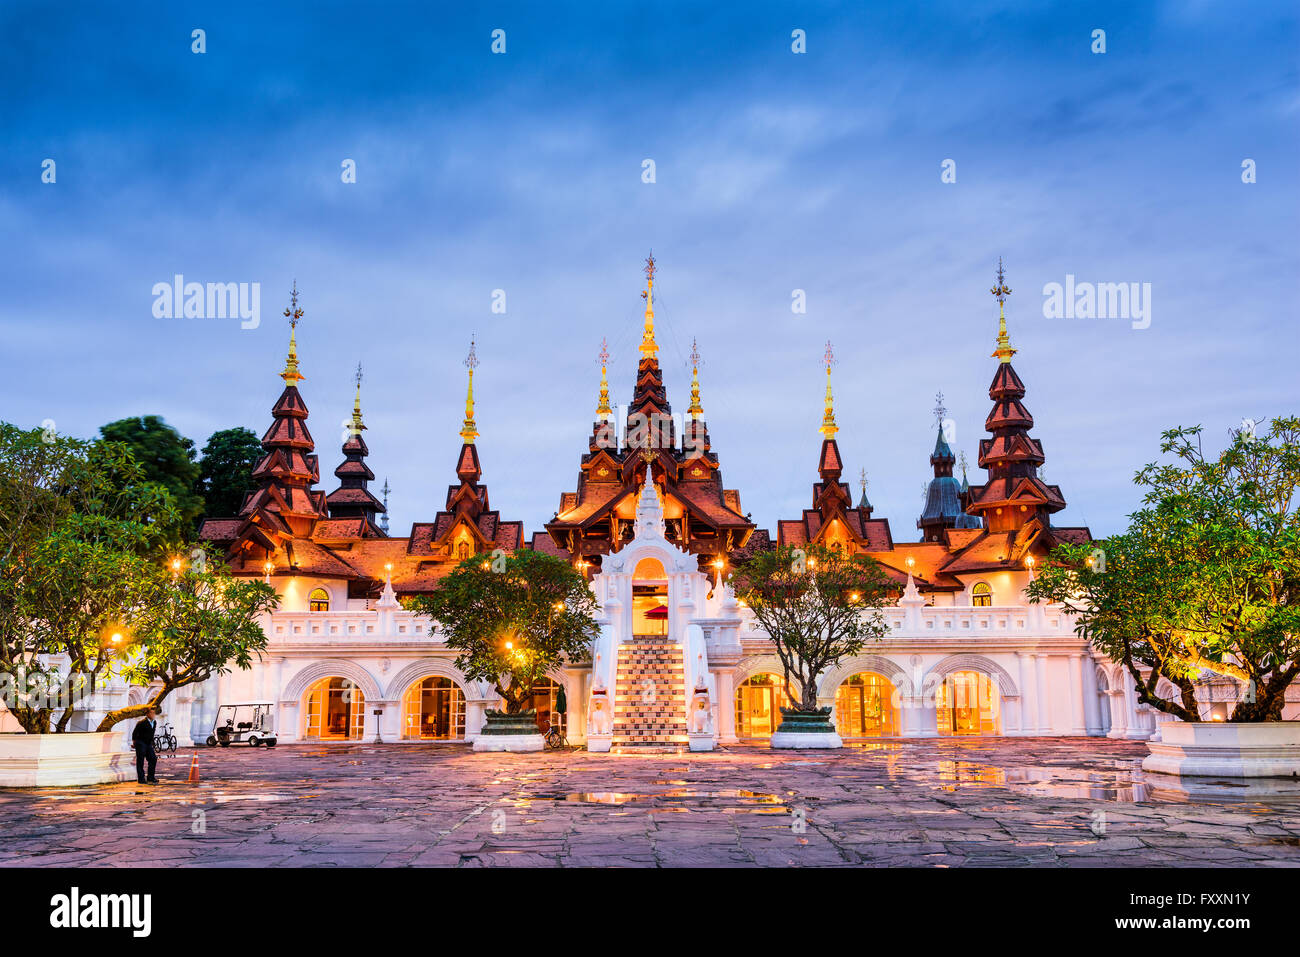 Chiang Mai, Thailand traditional hotel. - Stock Image